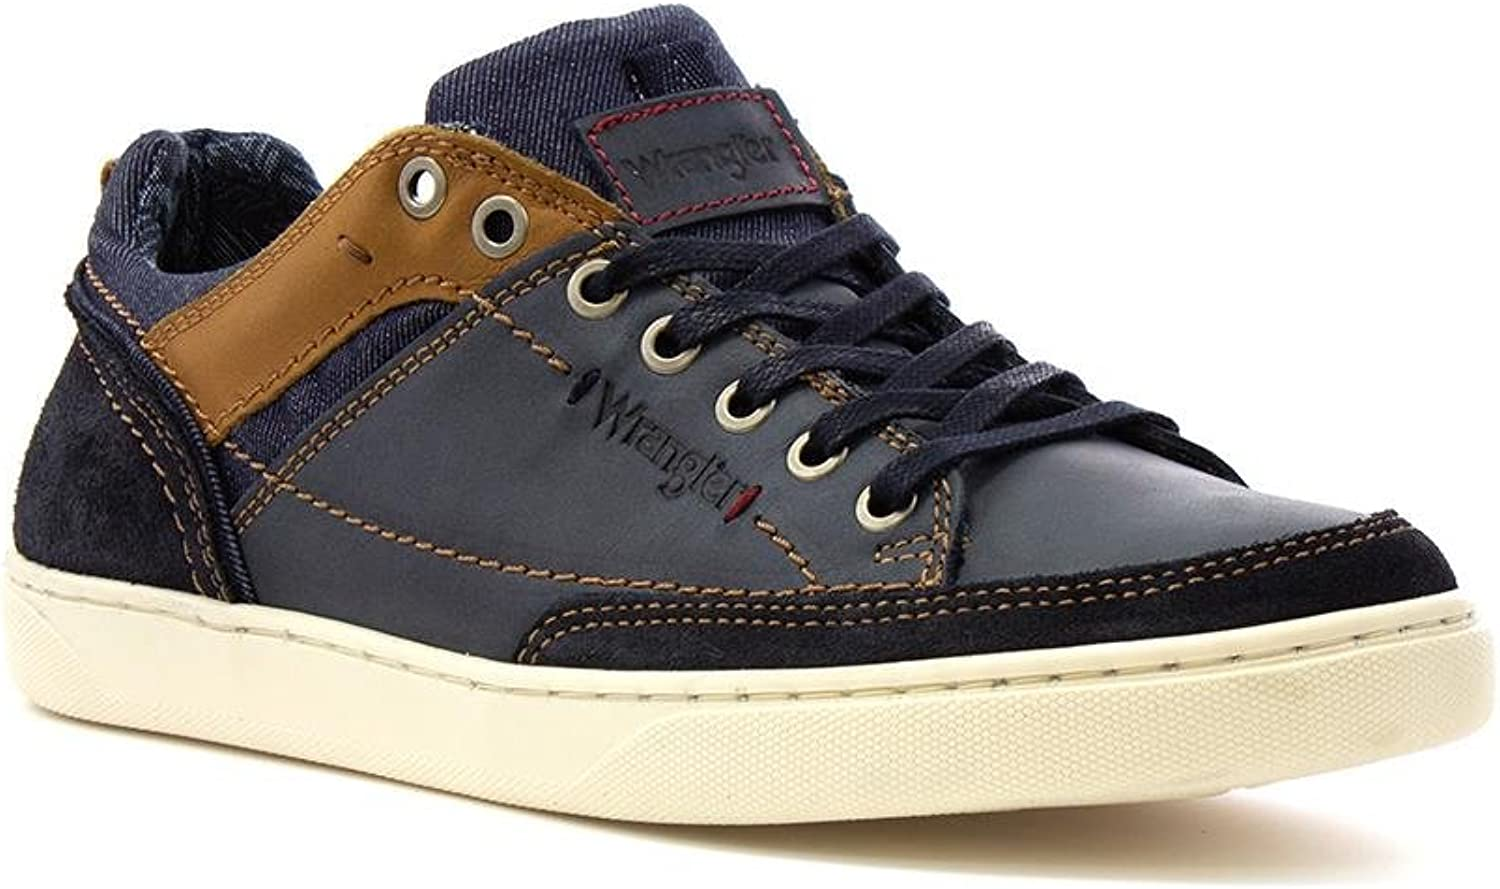 Wrangler Jasper Mens Navy Leather Casual shoes